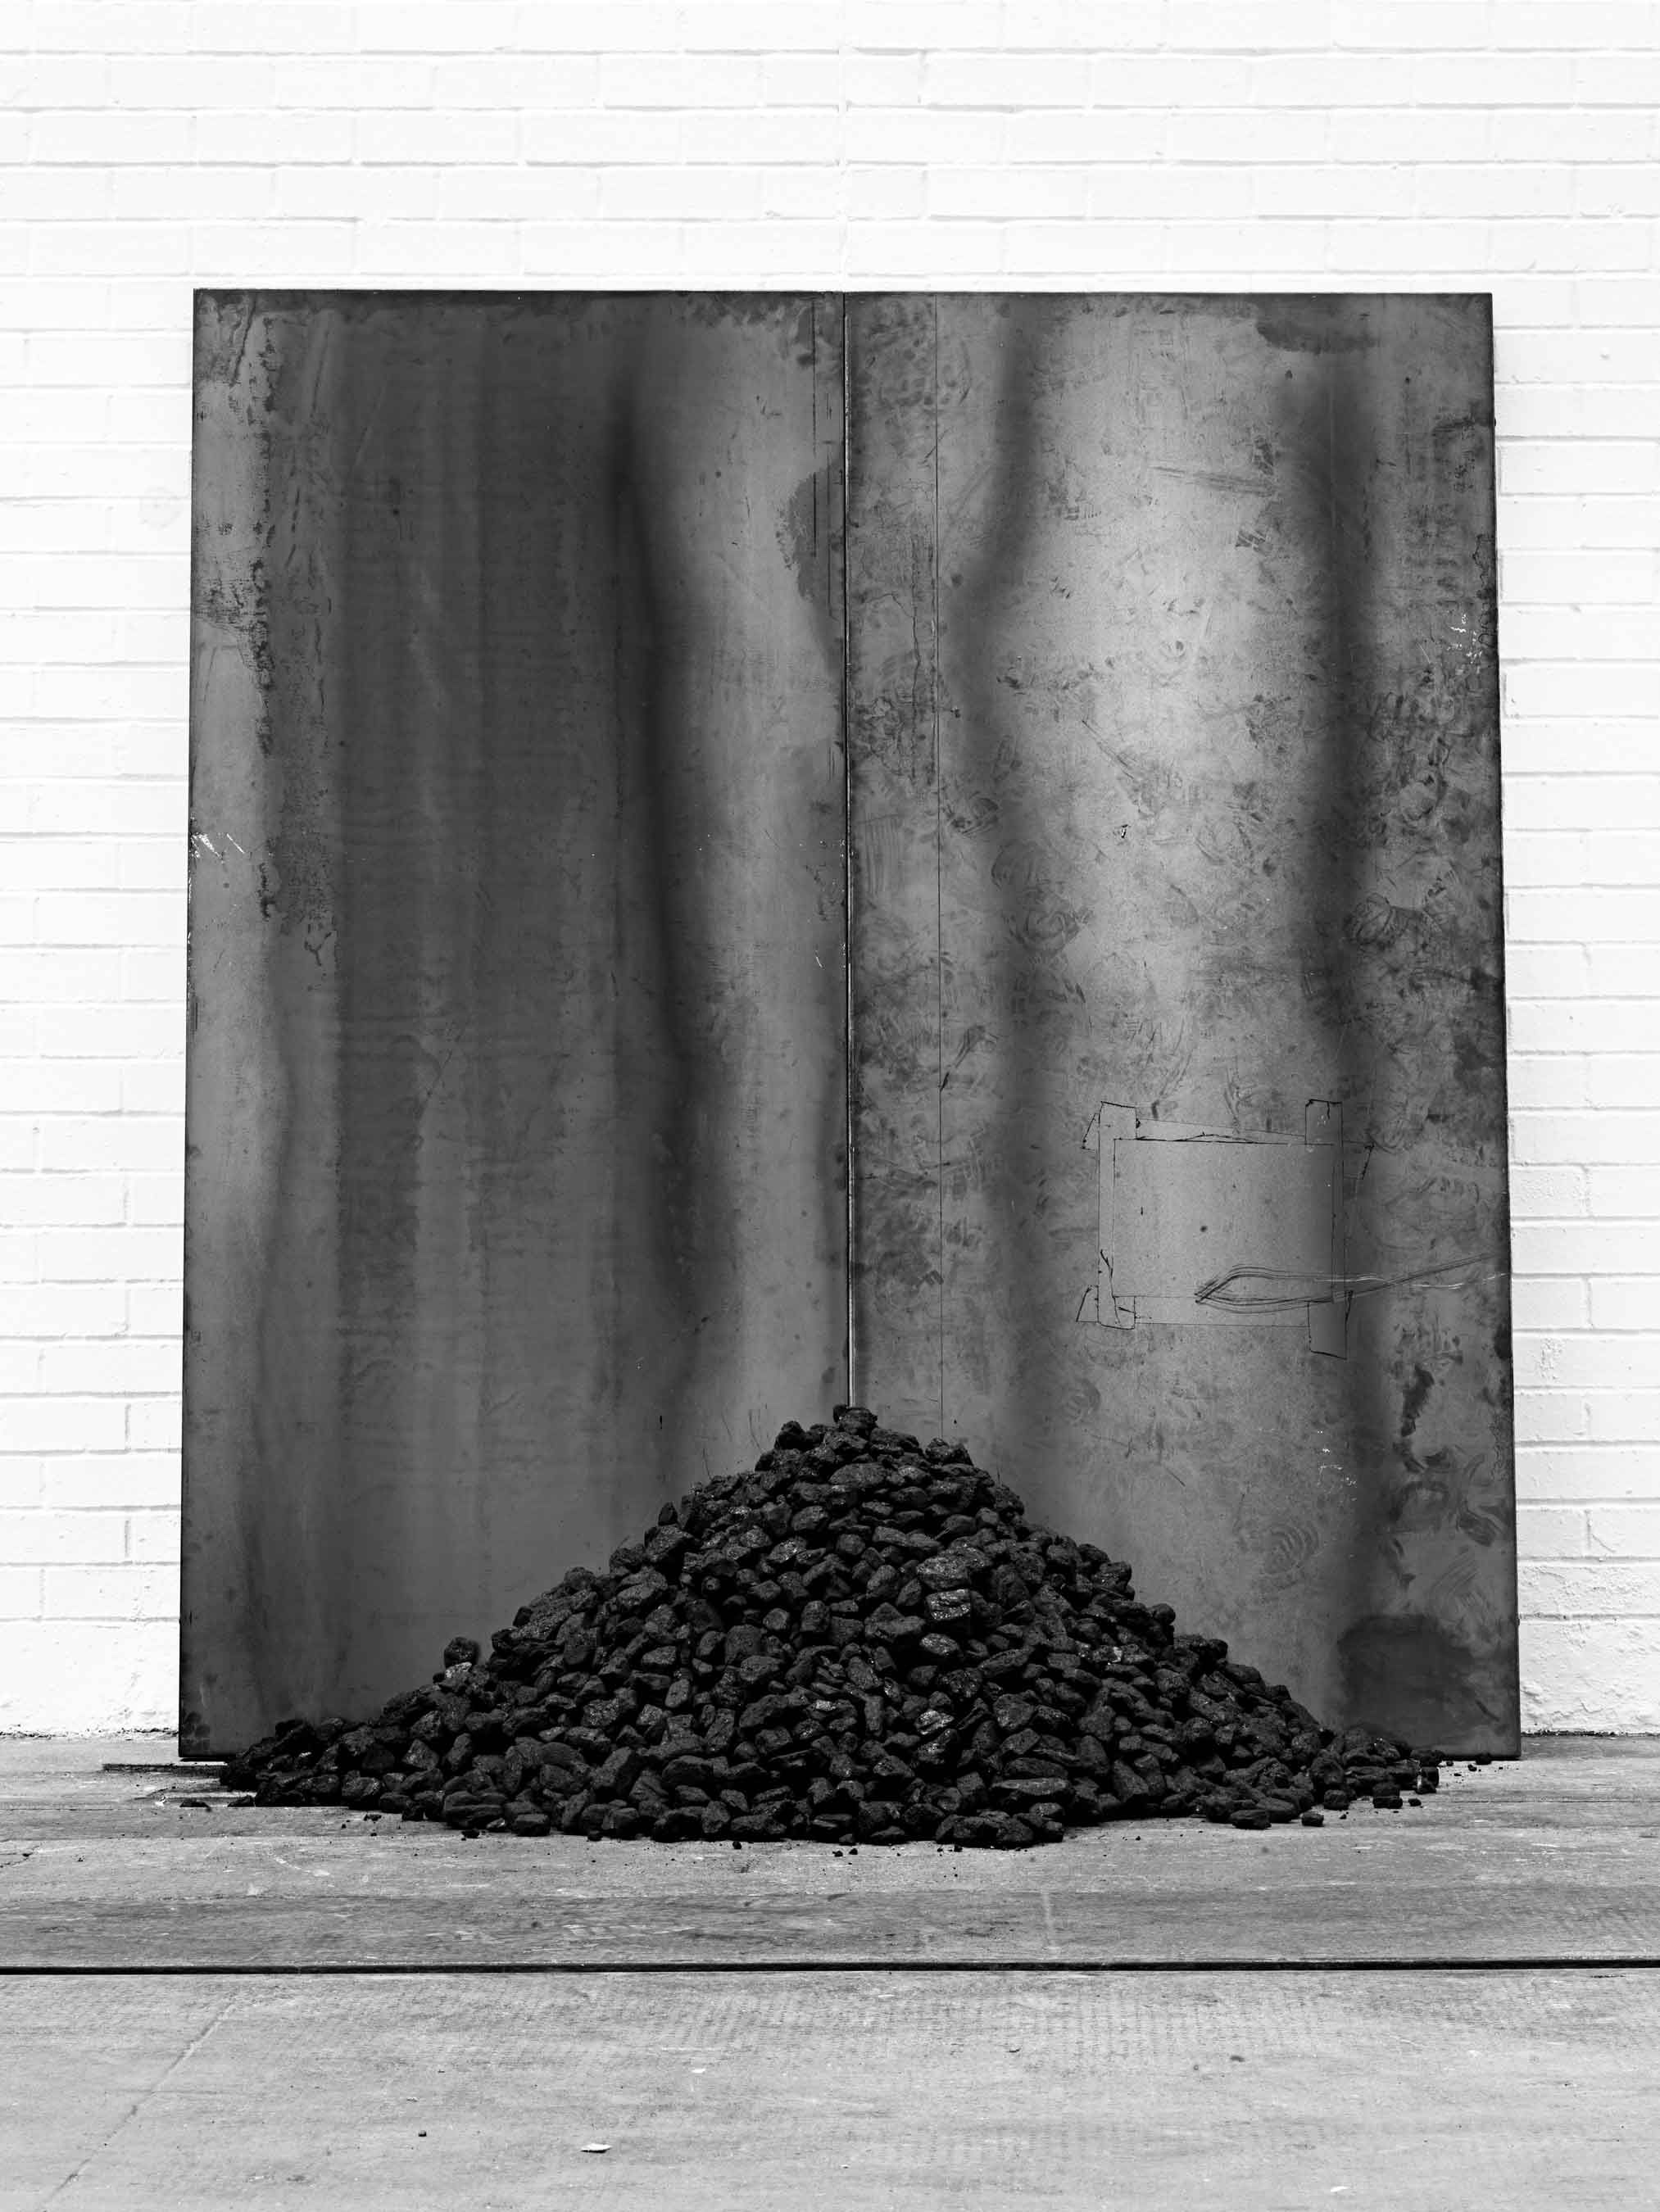 Jannis Kounellis, Untitled, 2012. Tramway, Glasgow. Photo: Manolis Baboussis.